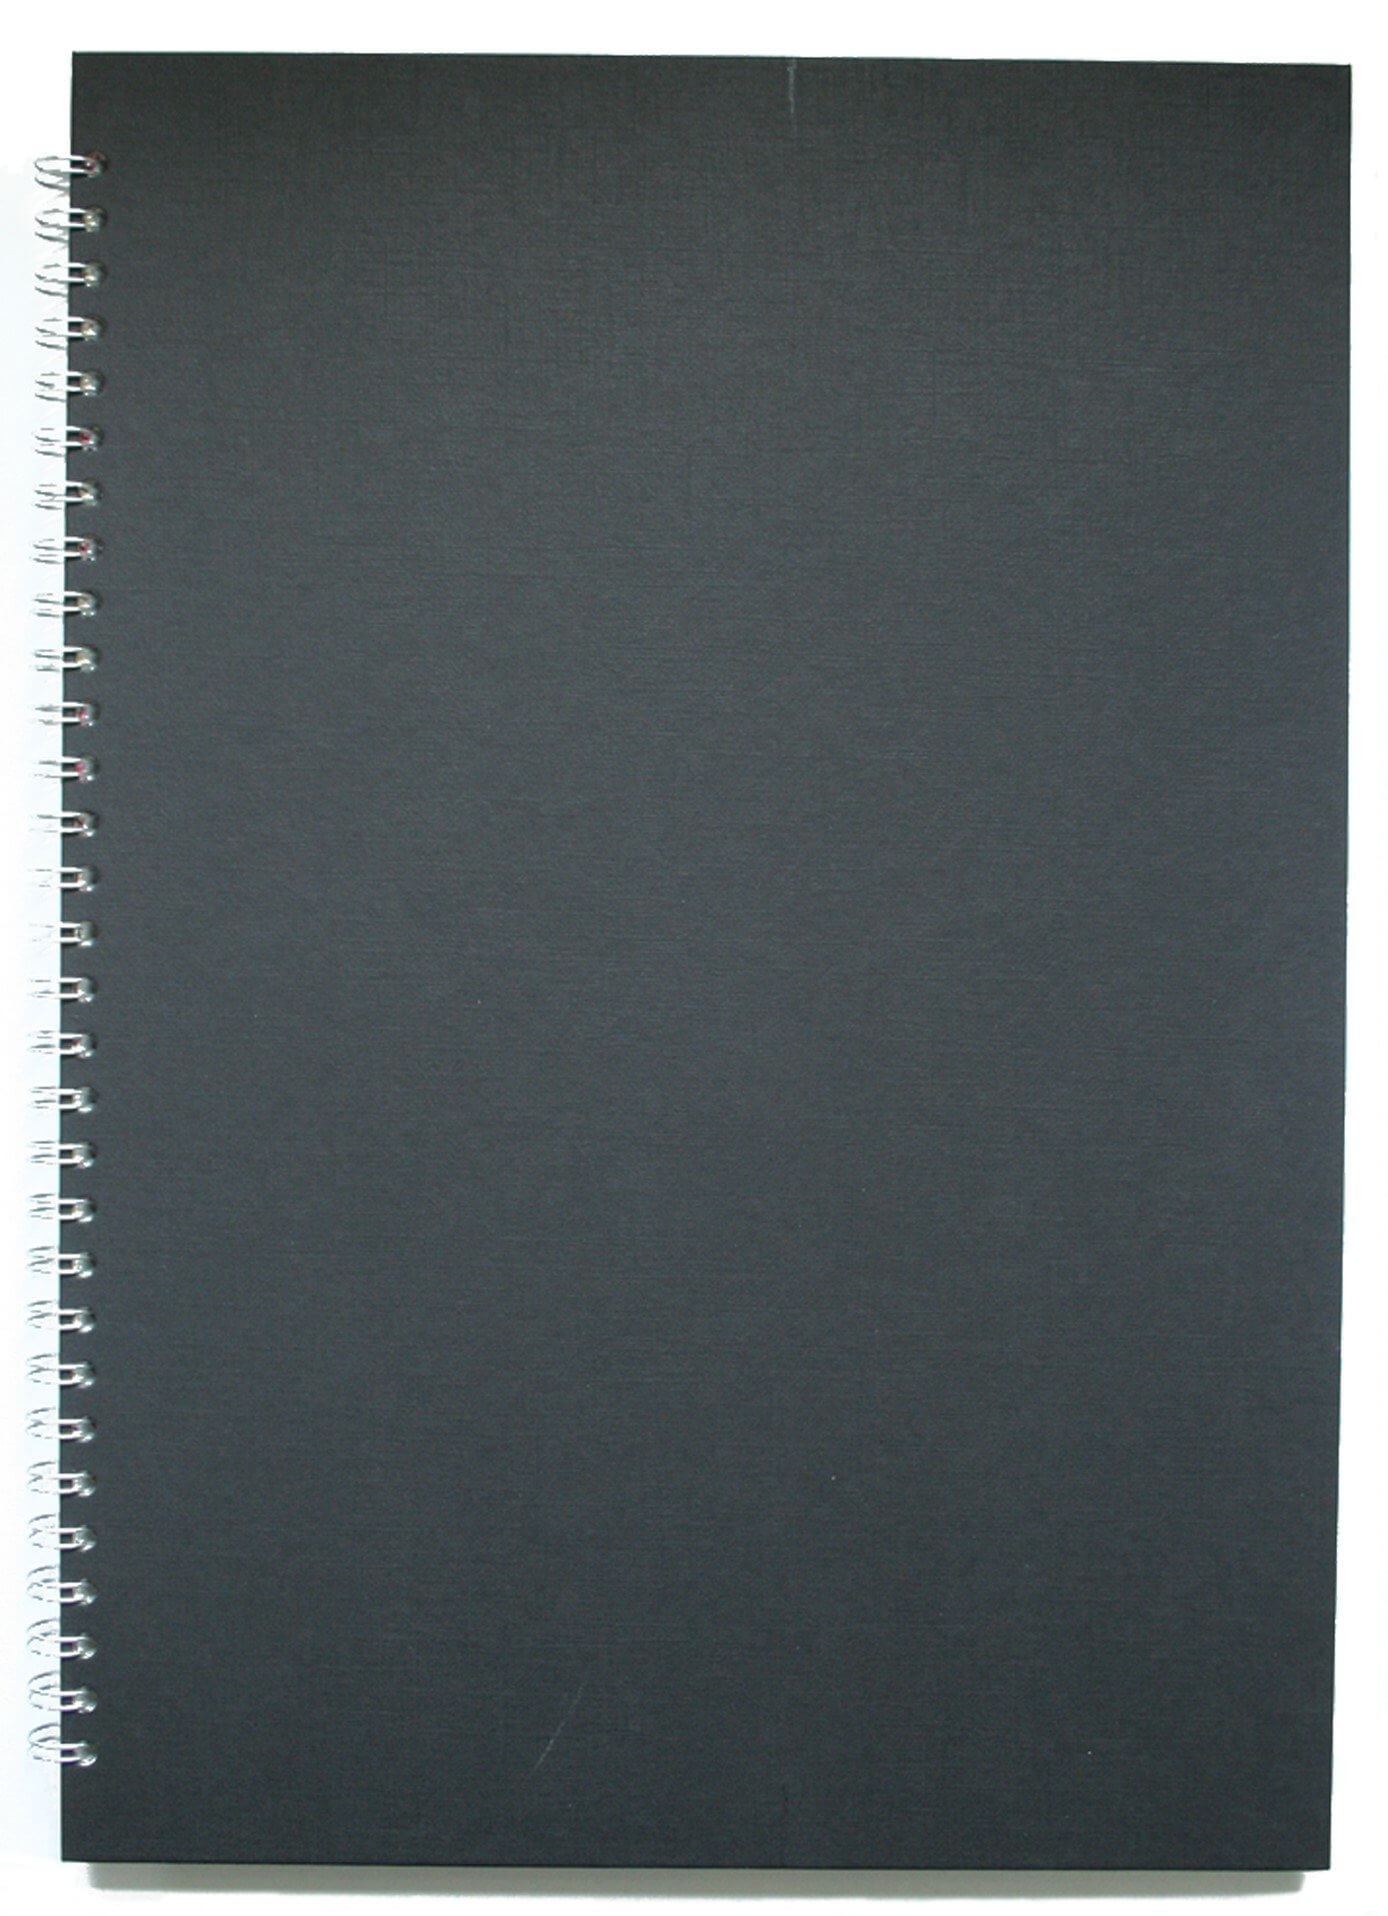 Black Display Sketchbook Album